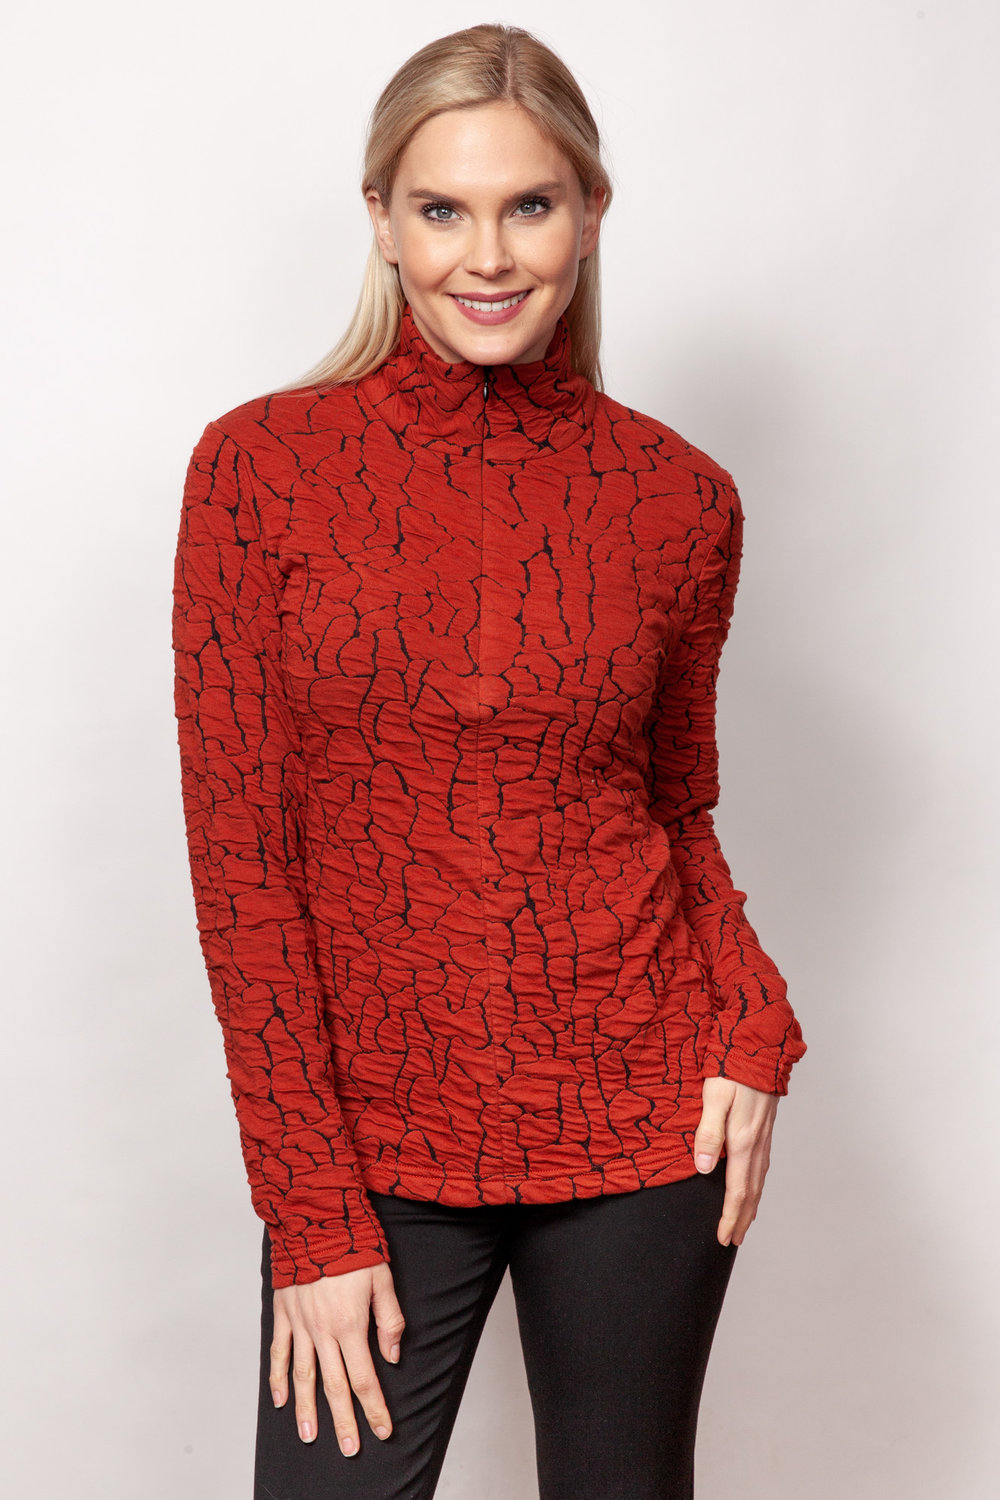 Copy of Style # 80389-19, p 9 <br/>Blister Knits <br/>Colors: Persimmon + 2 others